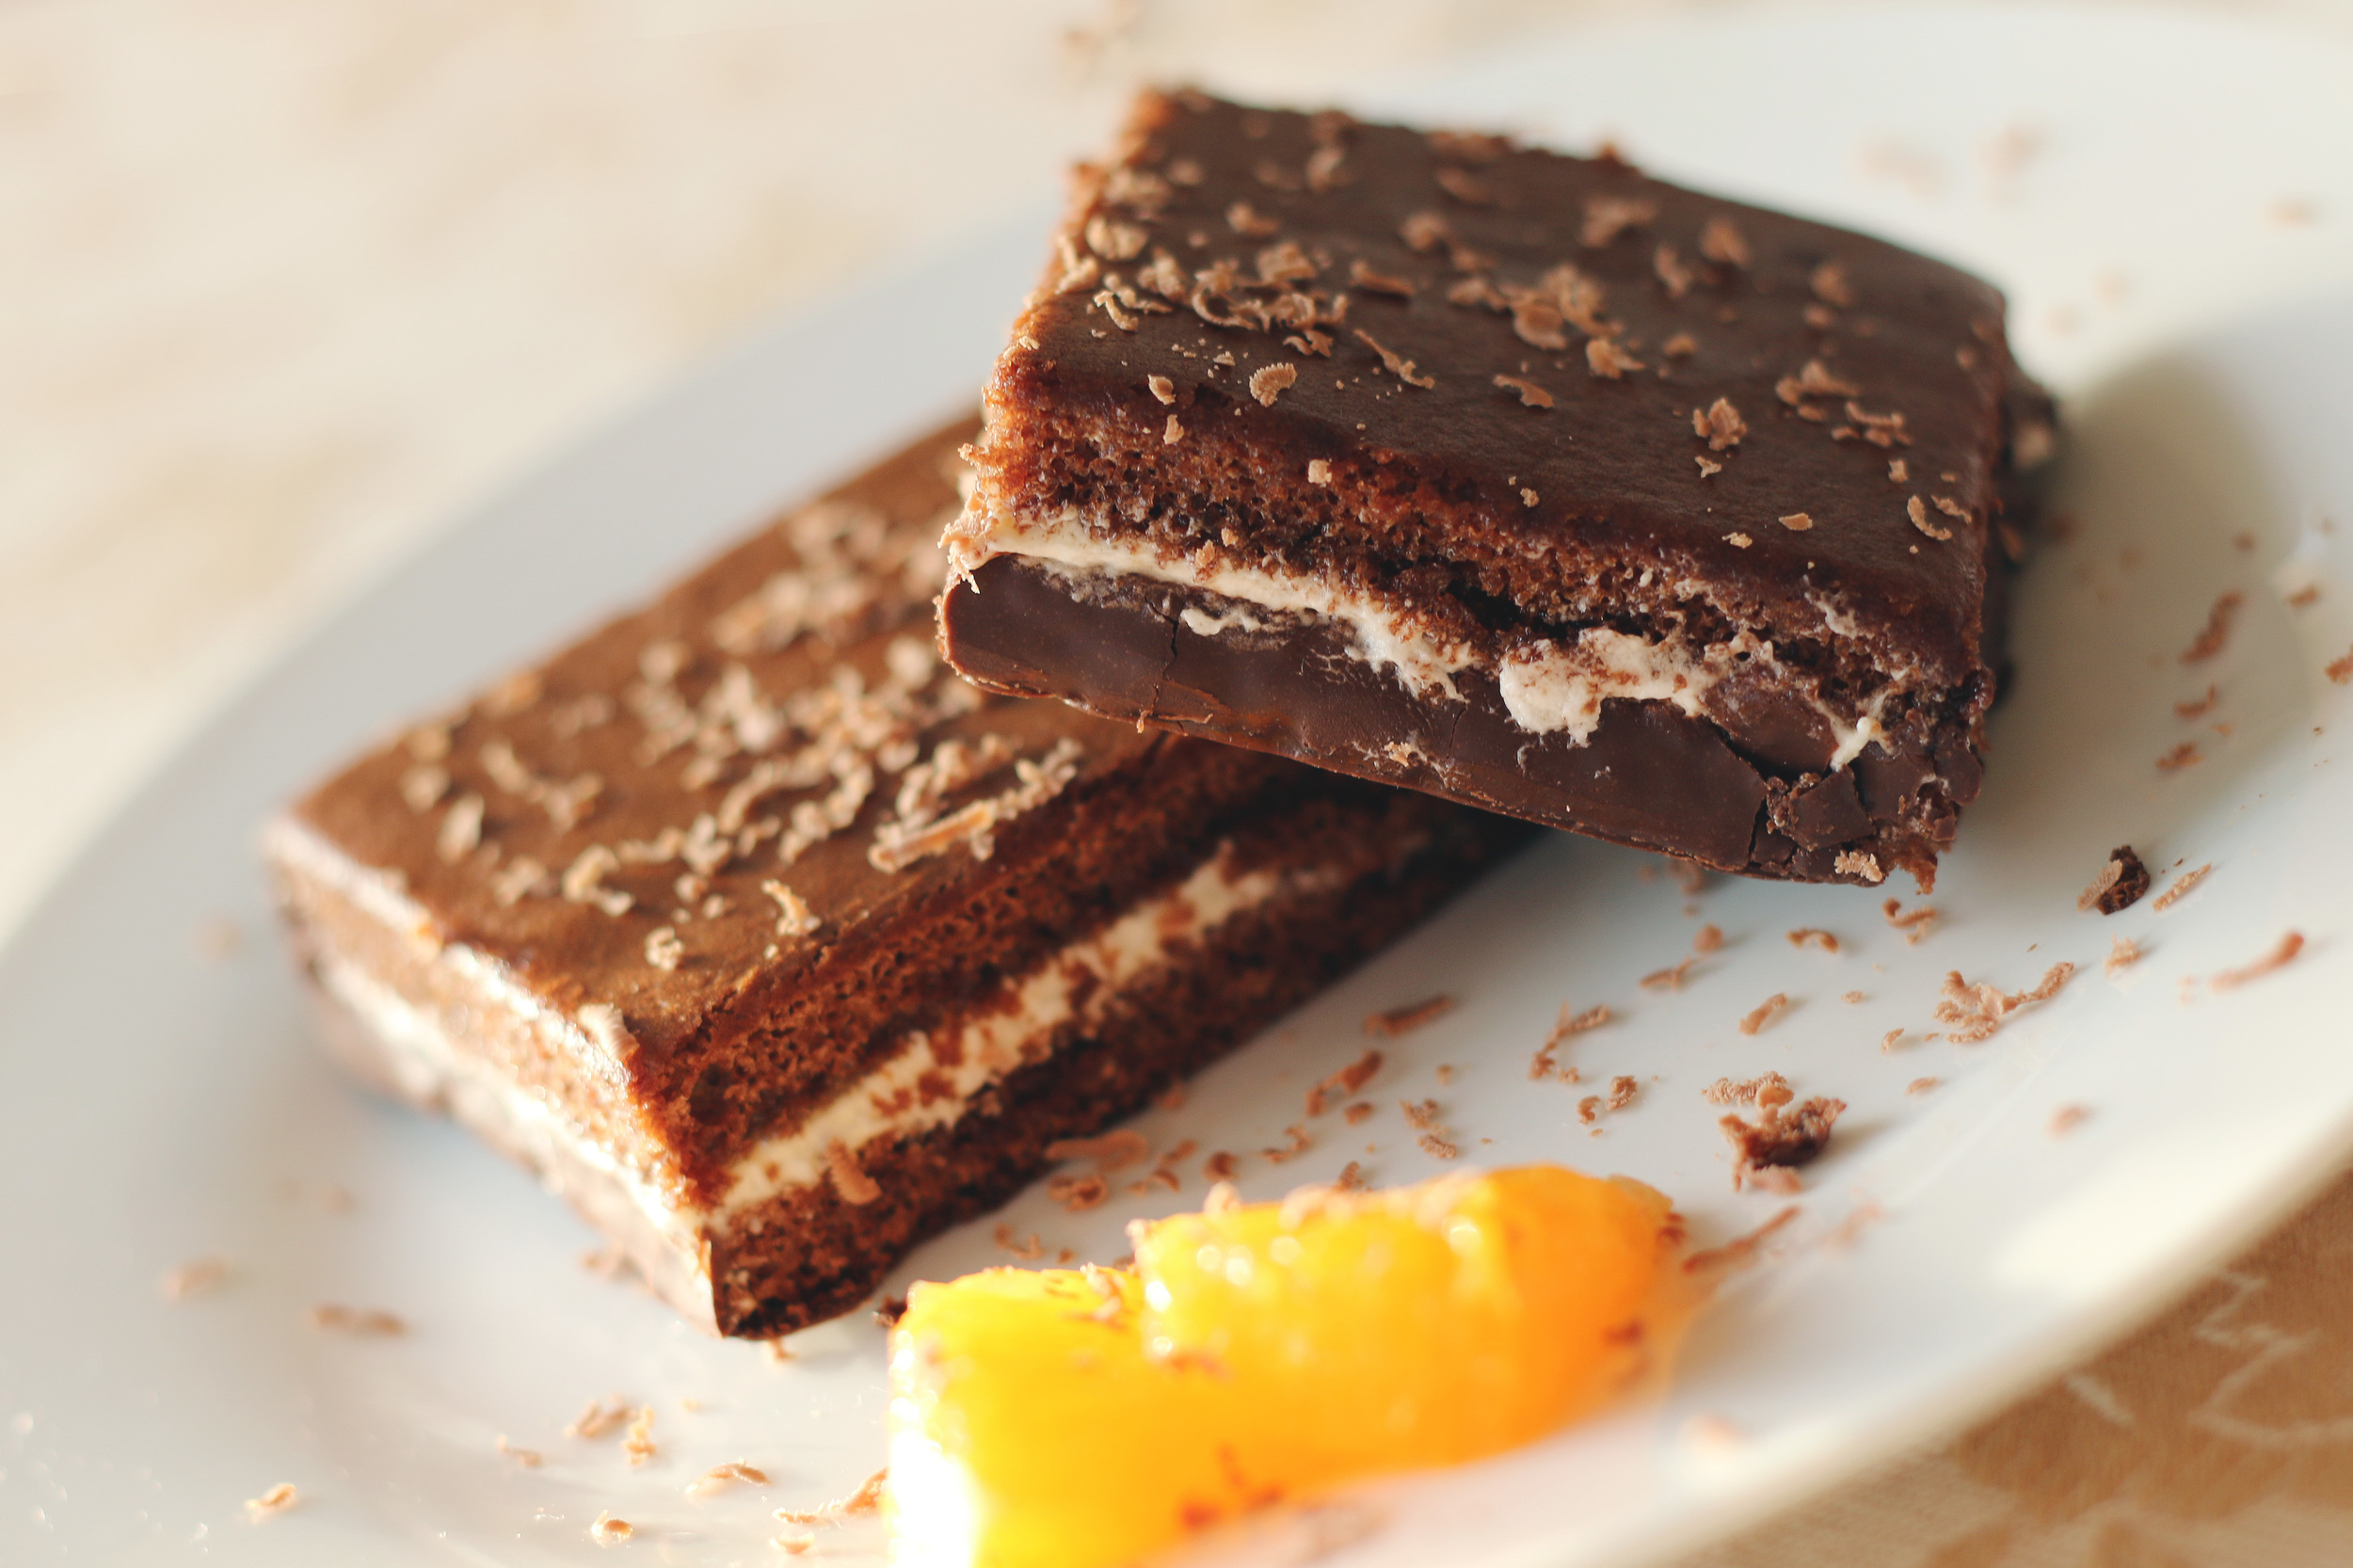 chocolate-dessert-brownies-cake.jpg